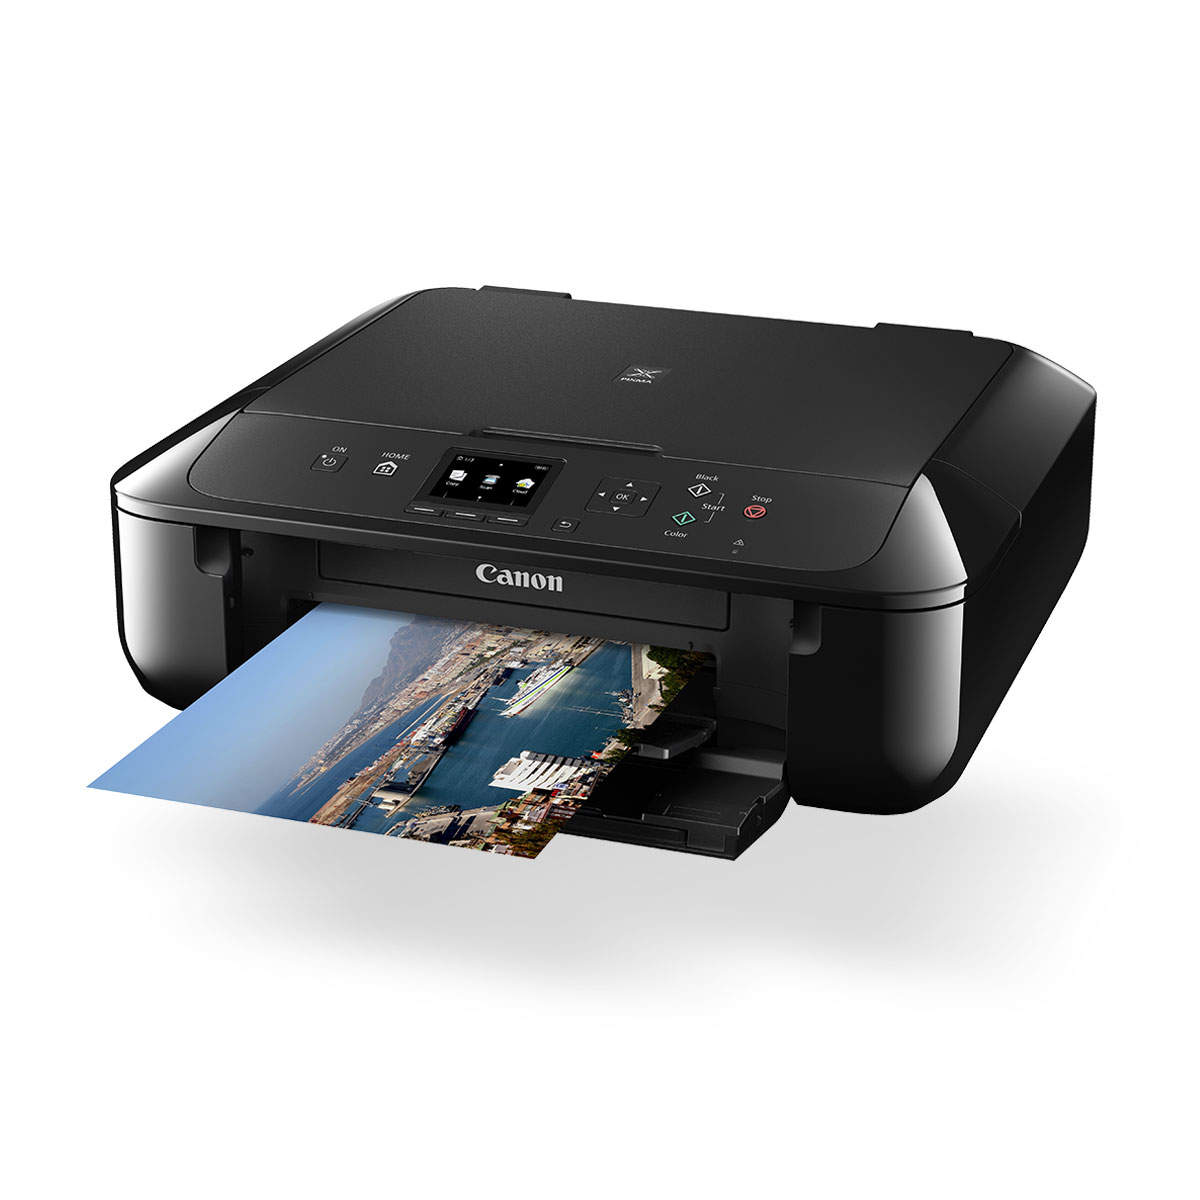 Canon PIXMA MG5760 Inkjet All-in-One printer black front angled with paper